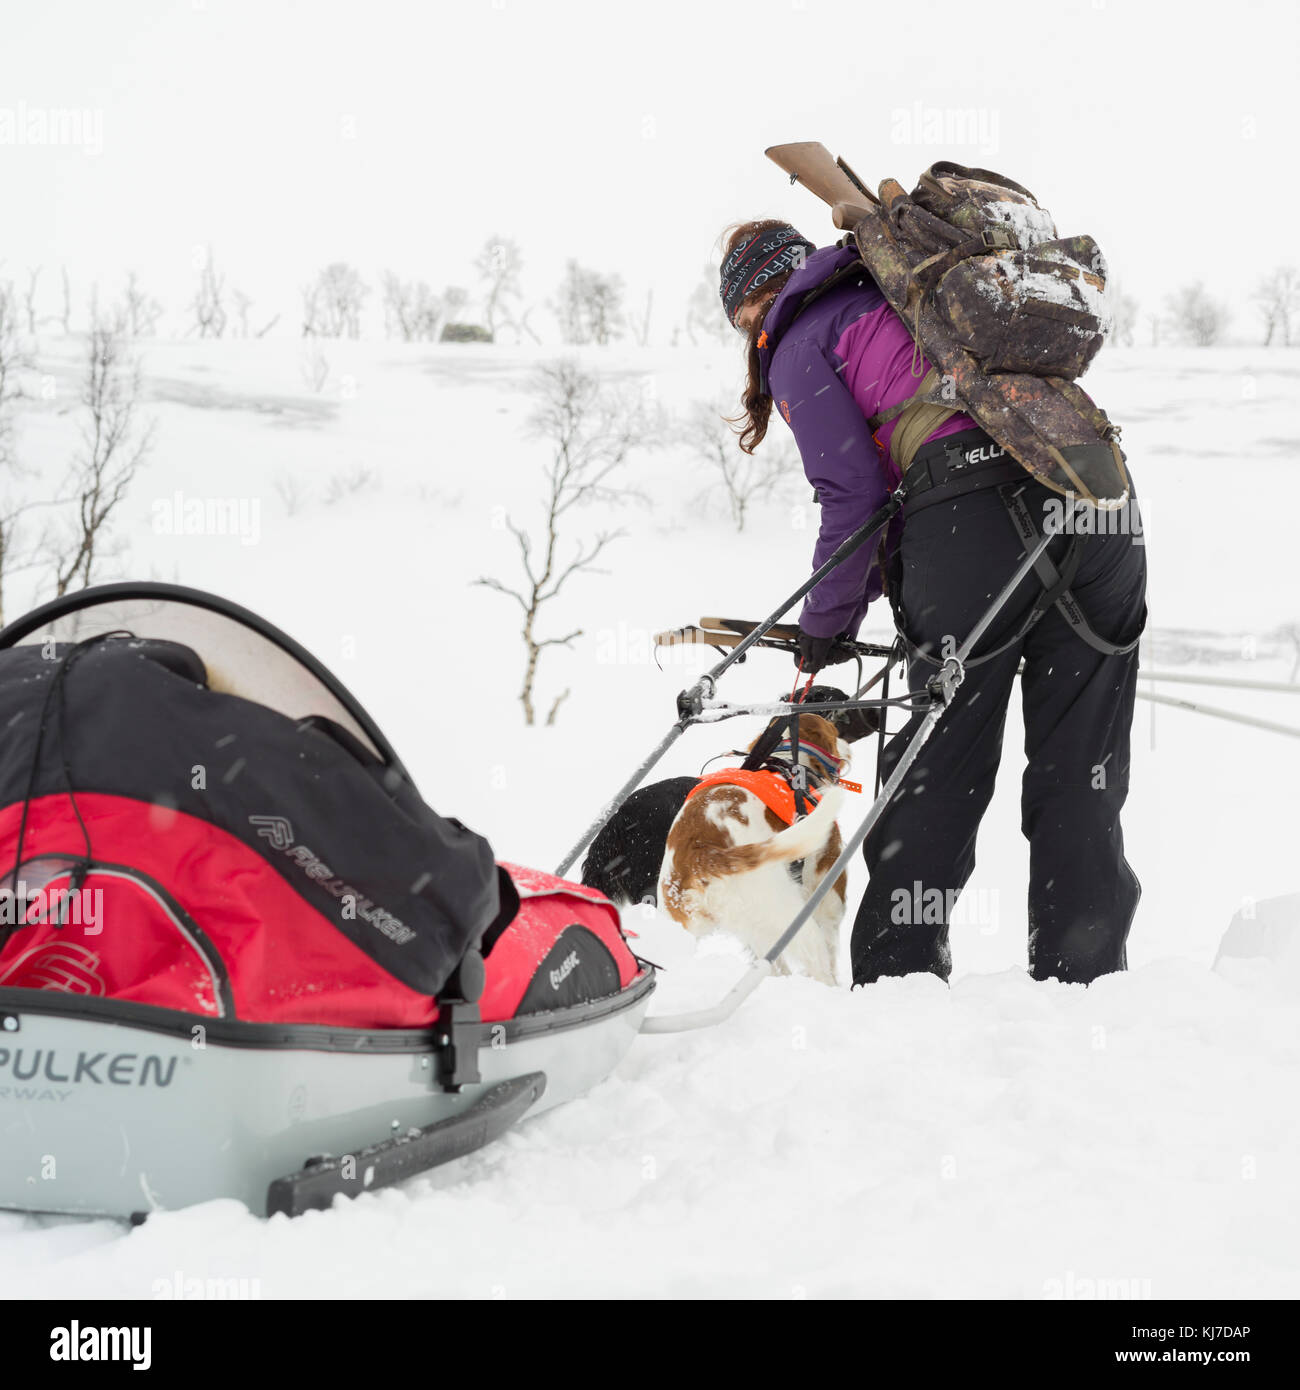 Woman dogsledding through a snowy landscape, Norrbotten County, Sweden - Stock Image